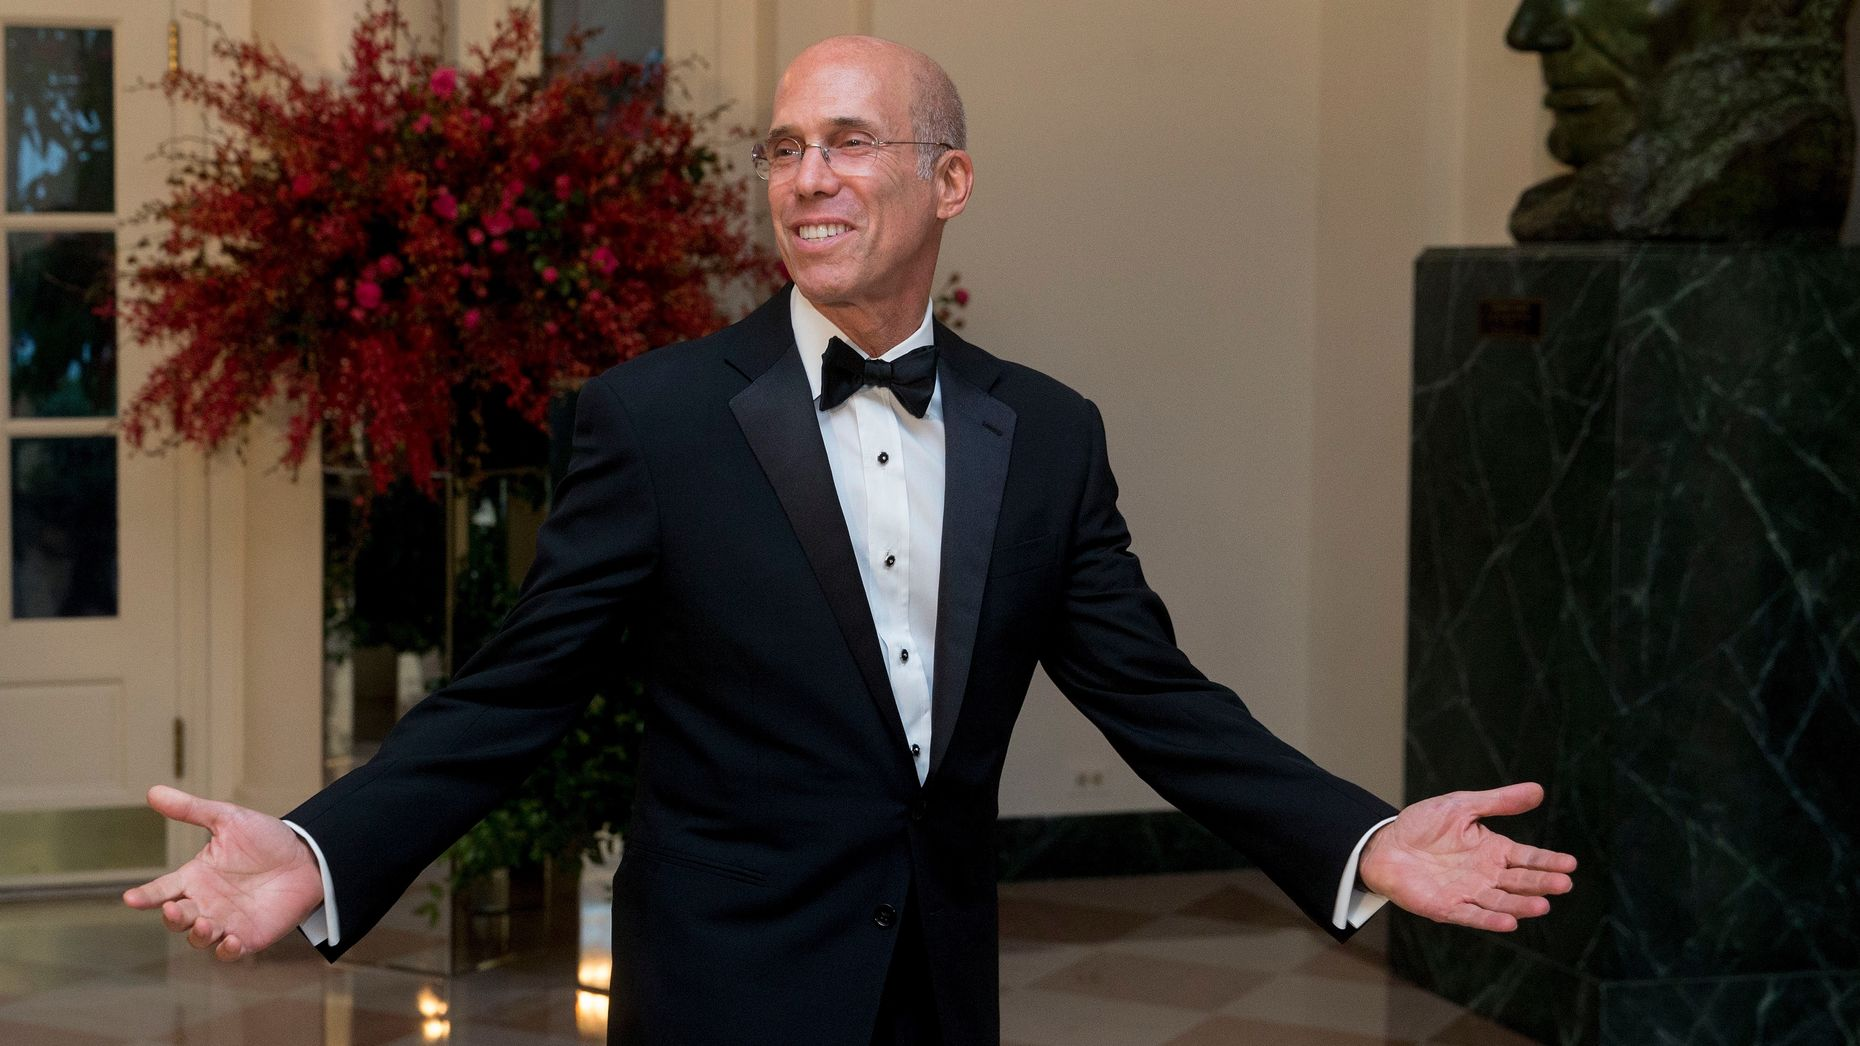 Dreamworks Animation CEO Jeffrey Katzenberg. Photo by Bloomberg.